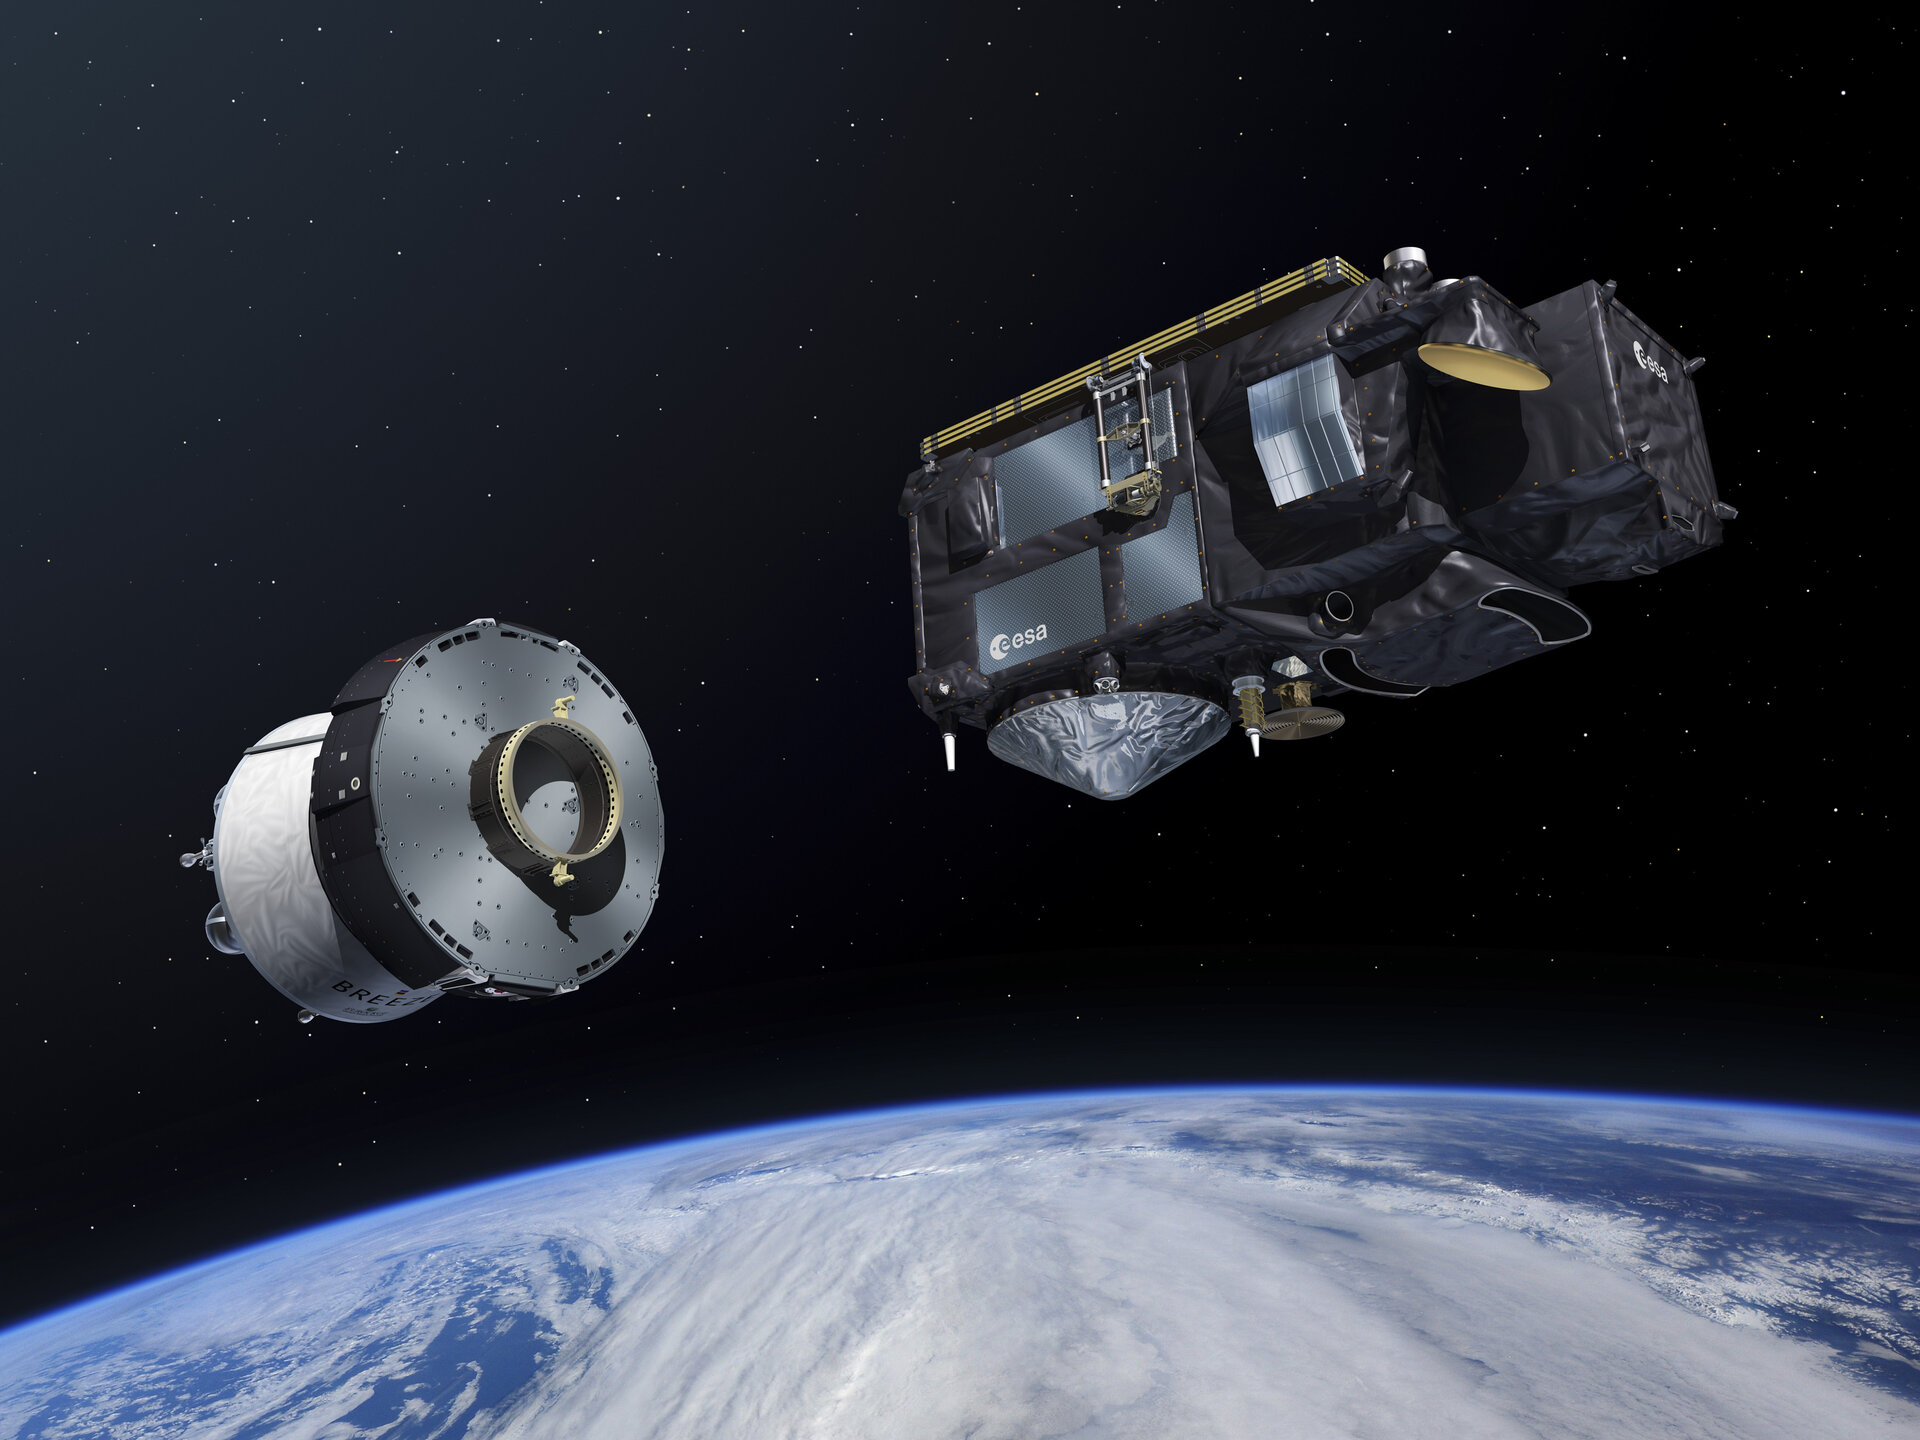 Sentinel-3 is ejected from the Breeze upper stage